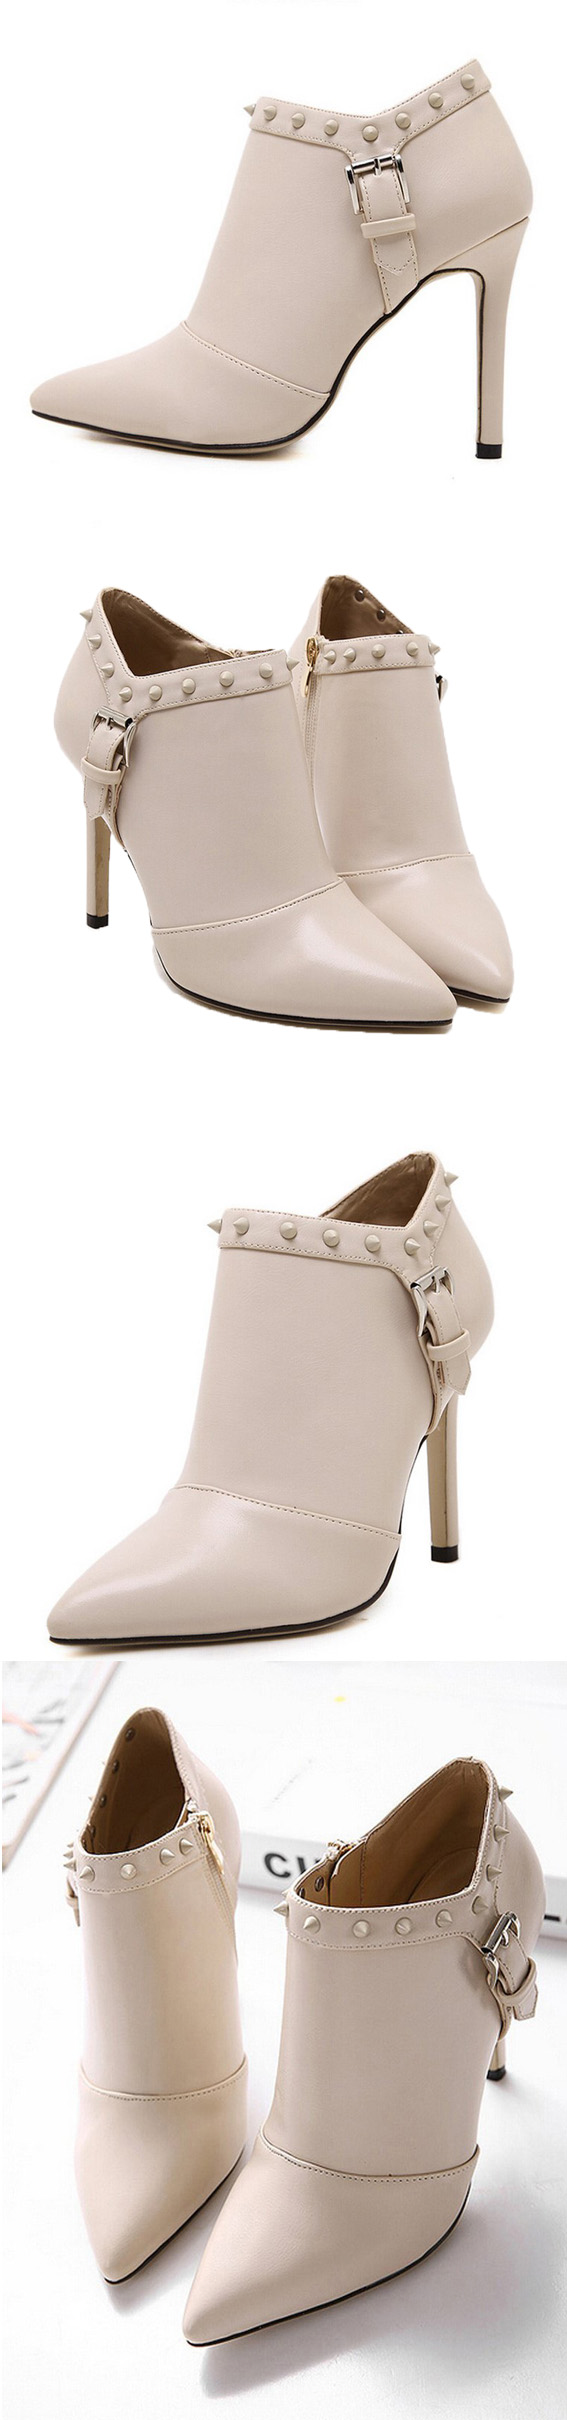 Adorable PU heeled ankle boots, with elegent color, make your outfits stand out in this season. Click to find more styles. From mynystyle.com.